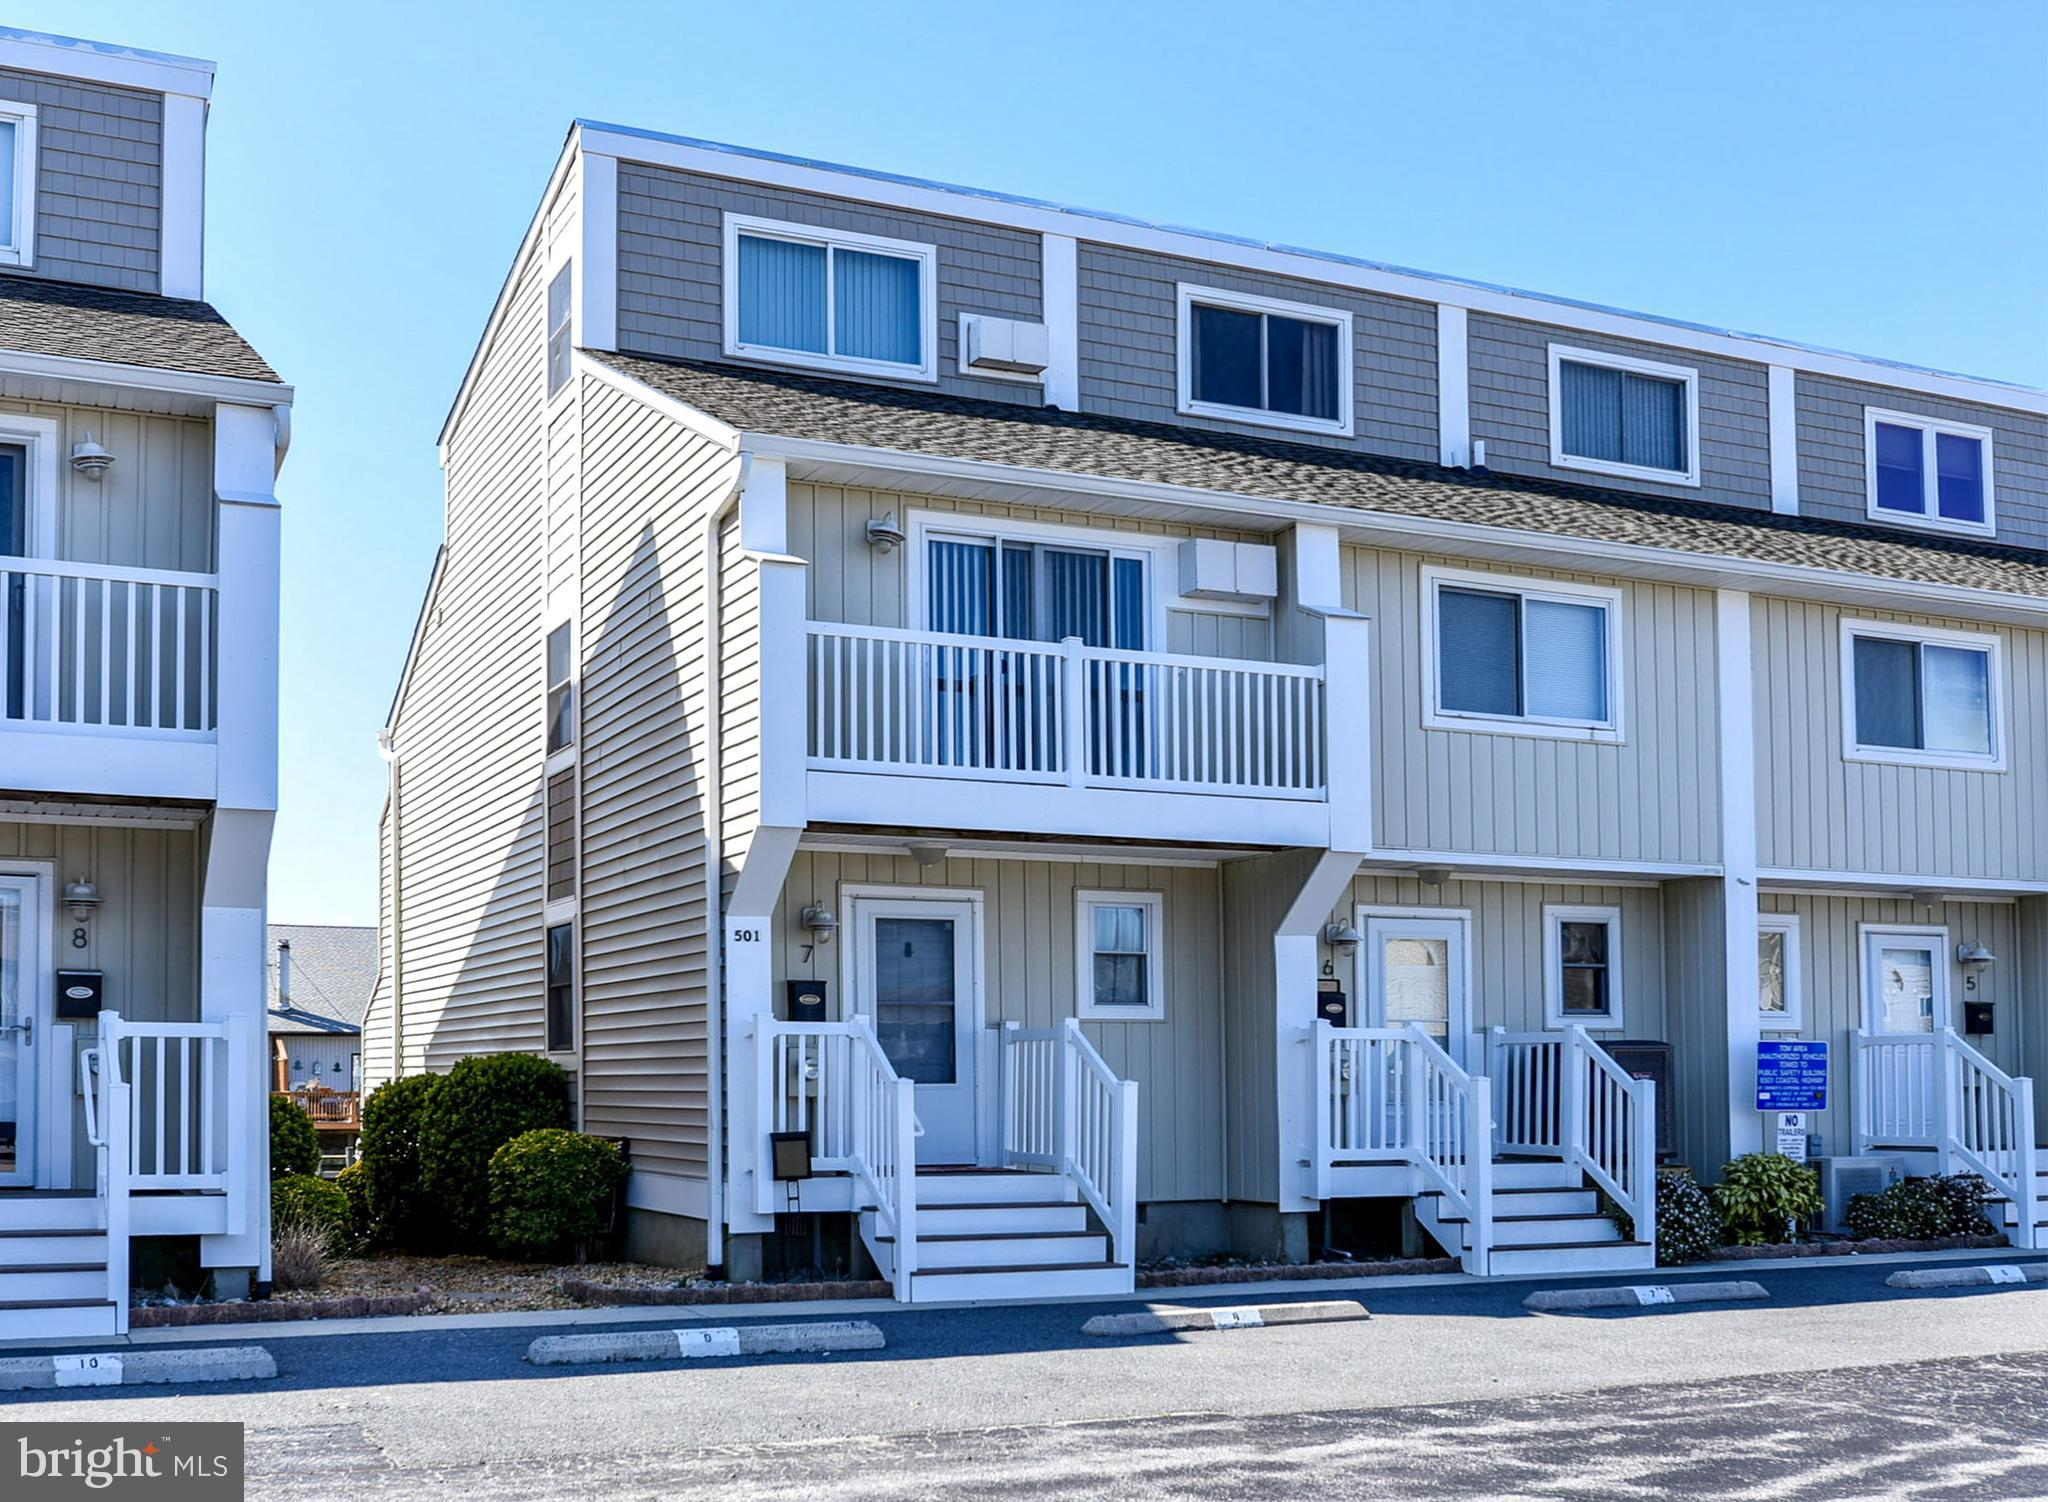 Waterfront, Southern Exposure, Nice 3 Bedroom, 2.5 Bath with Boat Slip, Pool, Private Rear Deck overlooking Canal, Community Boat Ramp, Located Bayside 32nd Street Area,  Close to Boardwalk, Jolly Roger's, Excellent Rental,